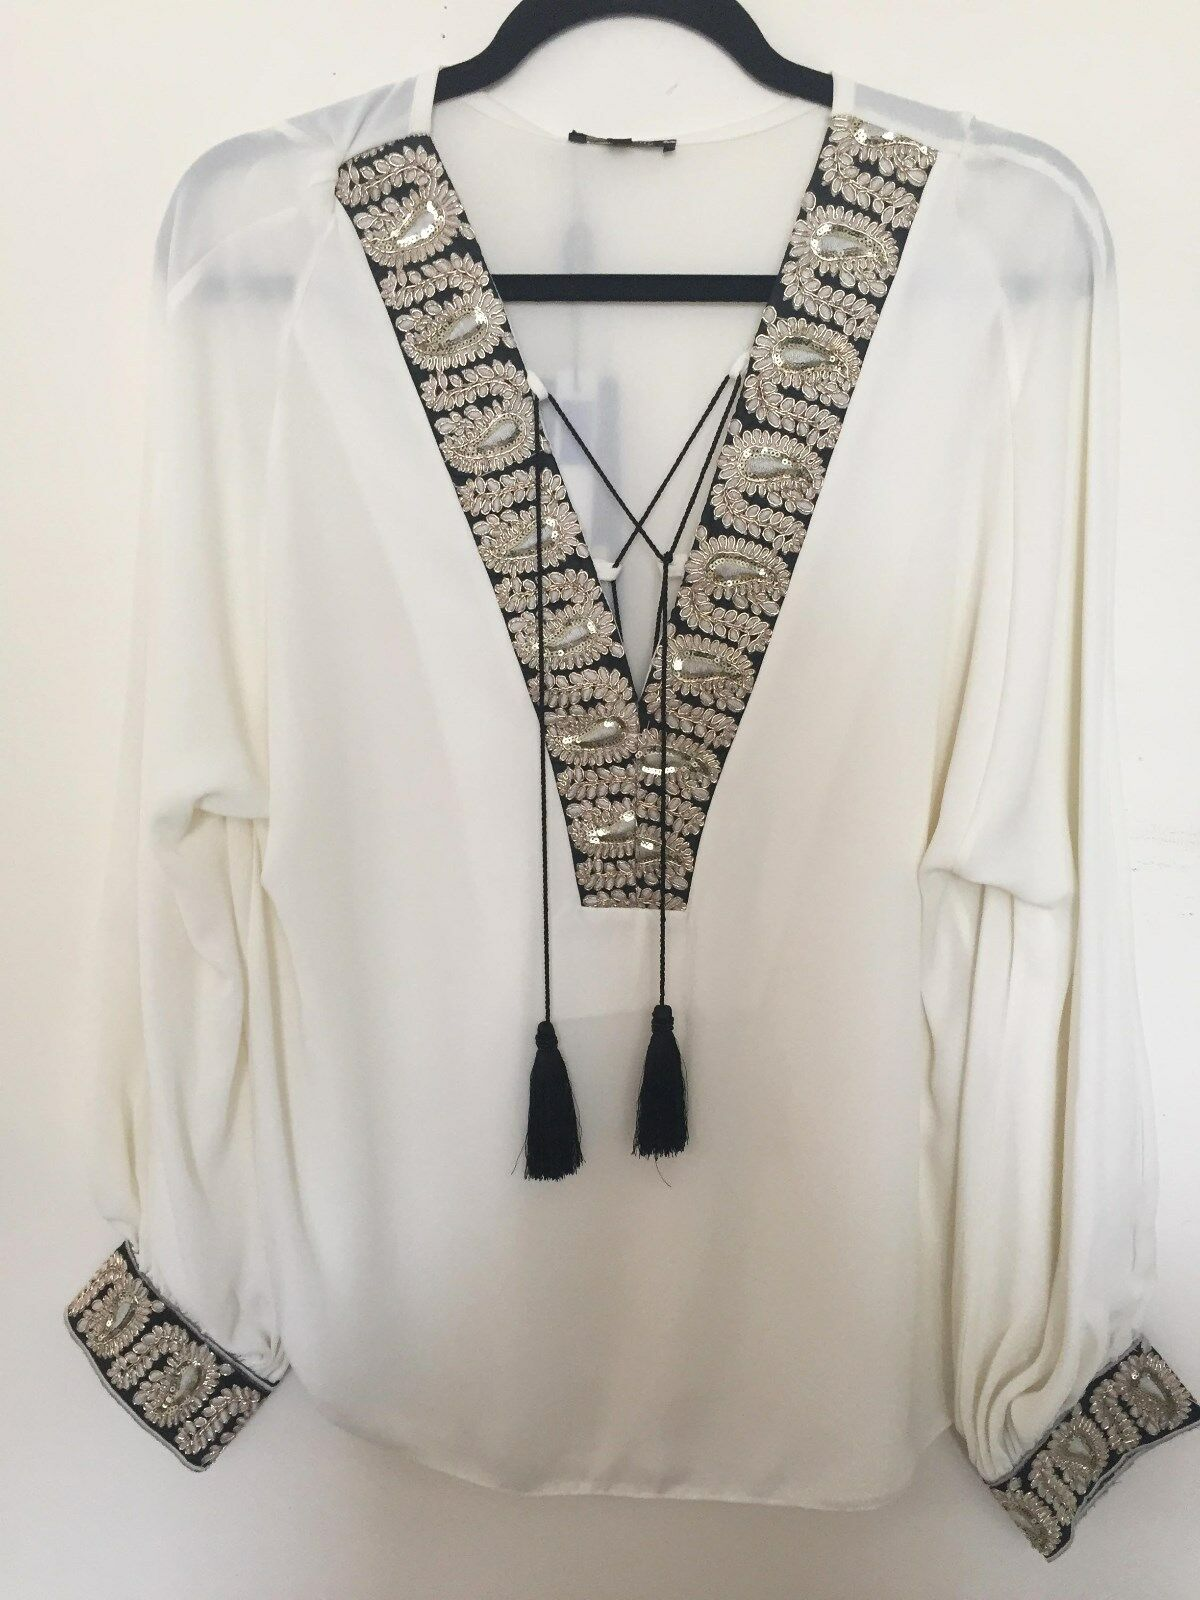 NEW BRIEFLY PARIS  IVORY & Gold EVENING DAY PARTY TOP SHIRT BLOUSE Größe UK12 US8